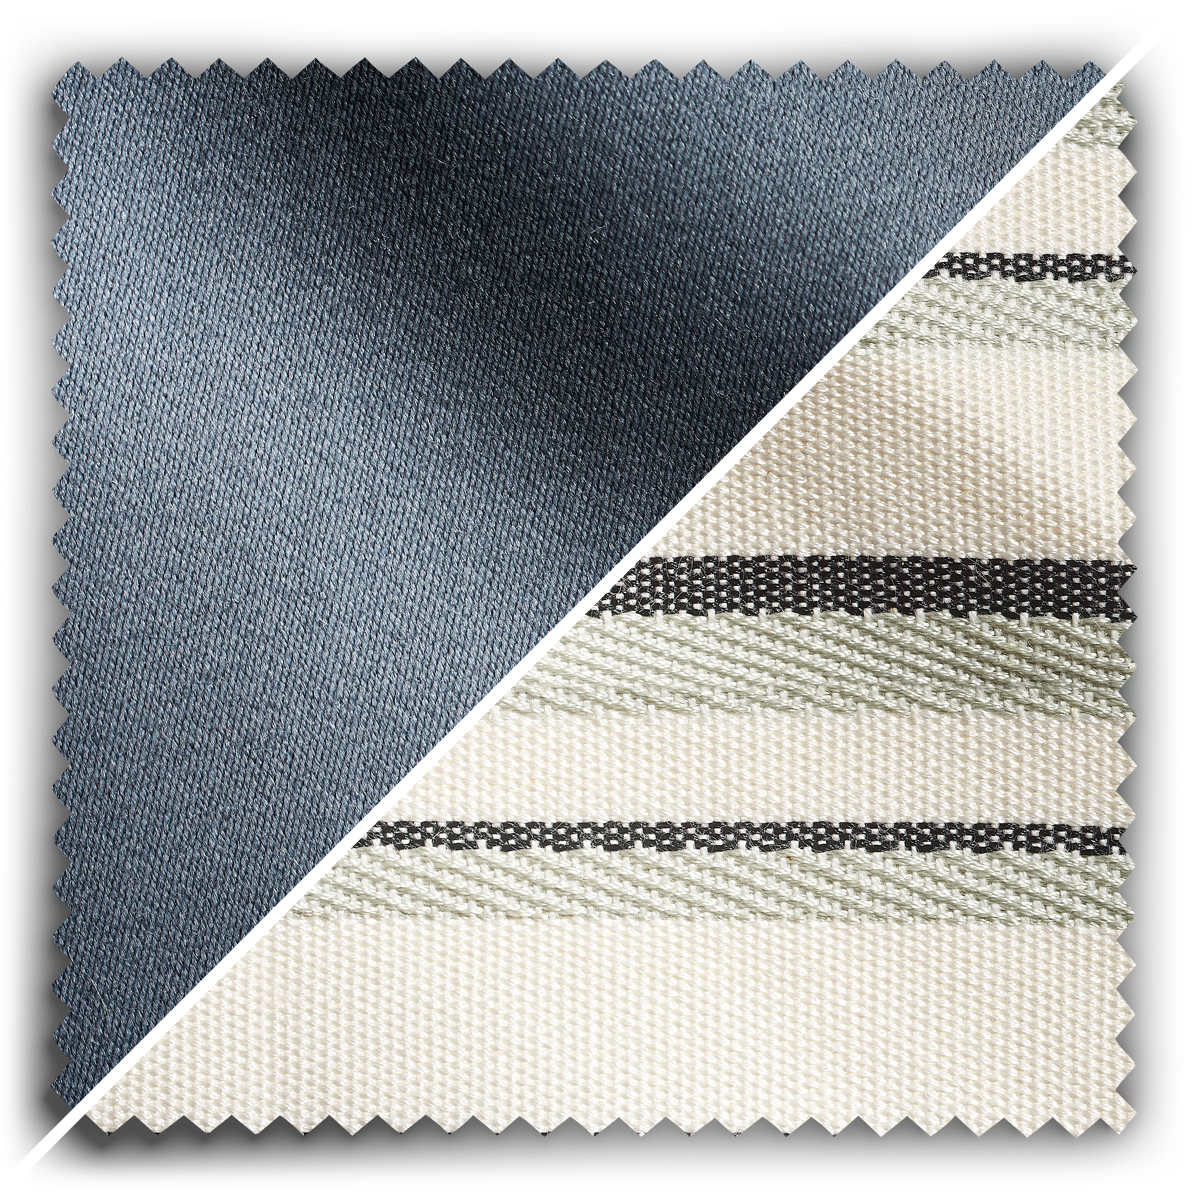 Image of Studio Stripes Baltic Seal Relaxed Wool fabric